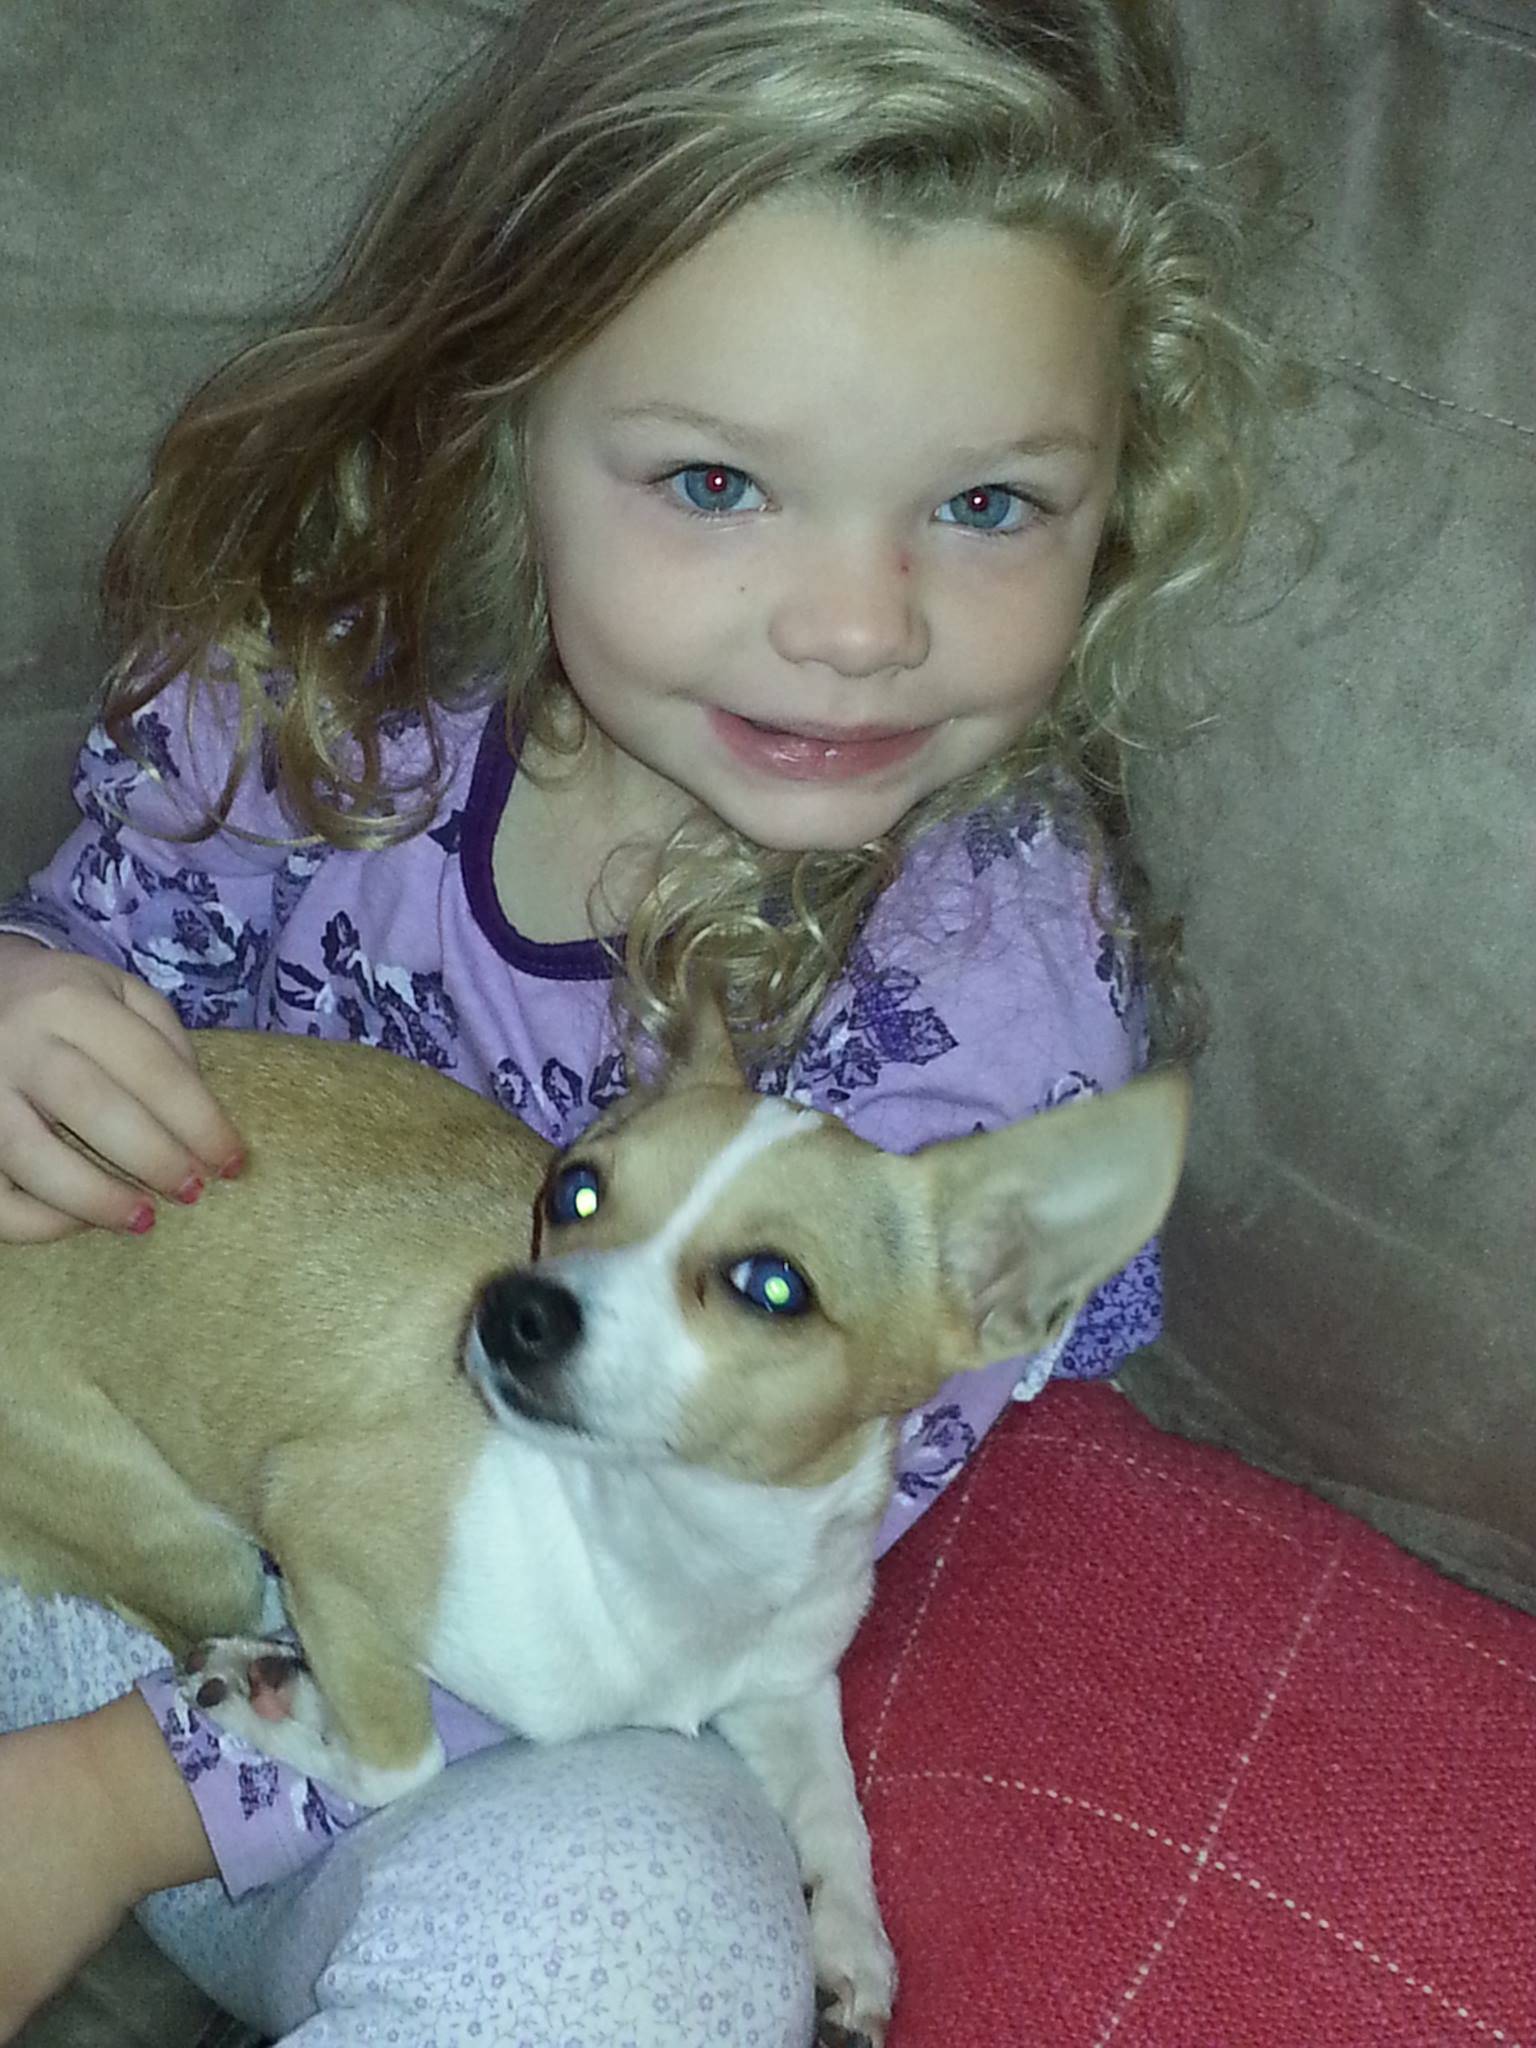 Maclain and TIlly